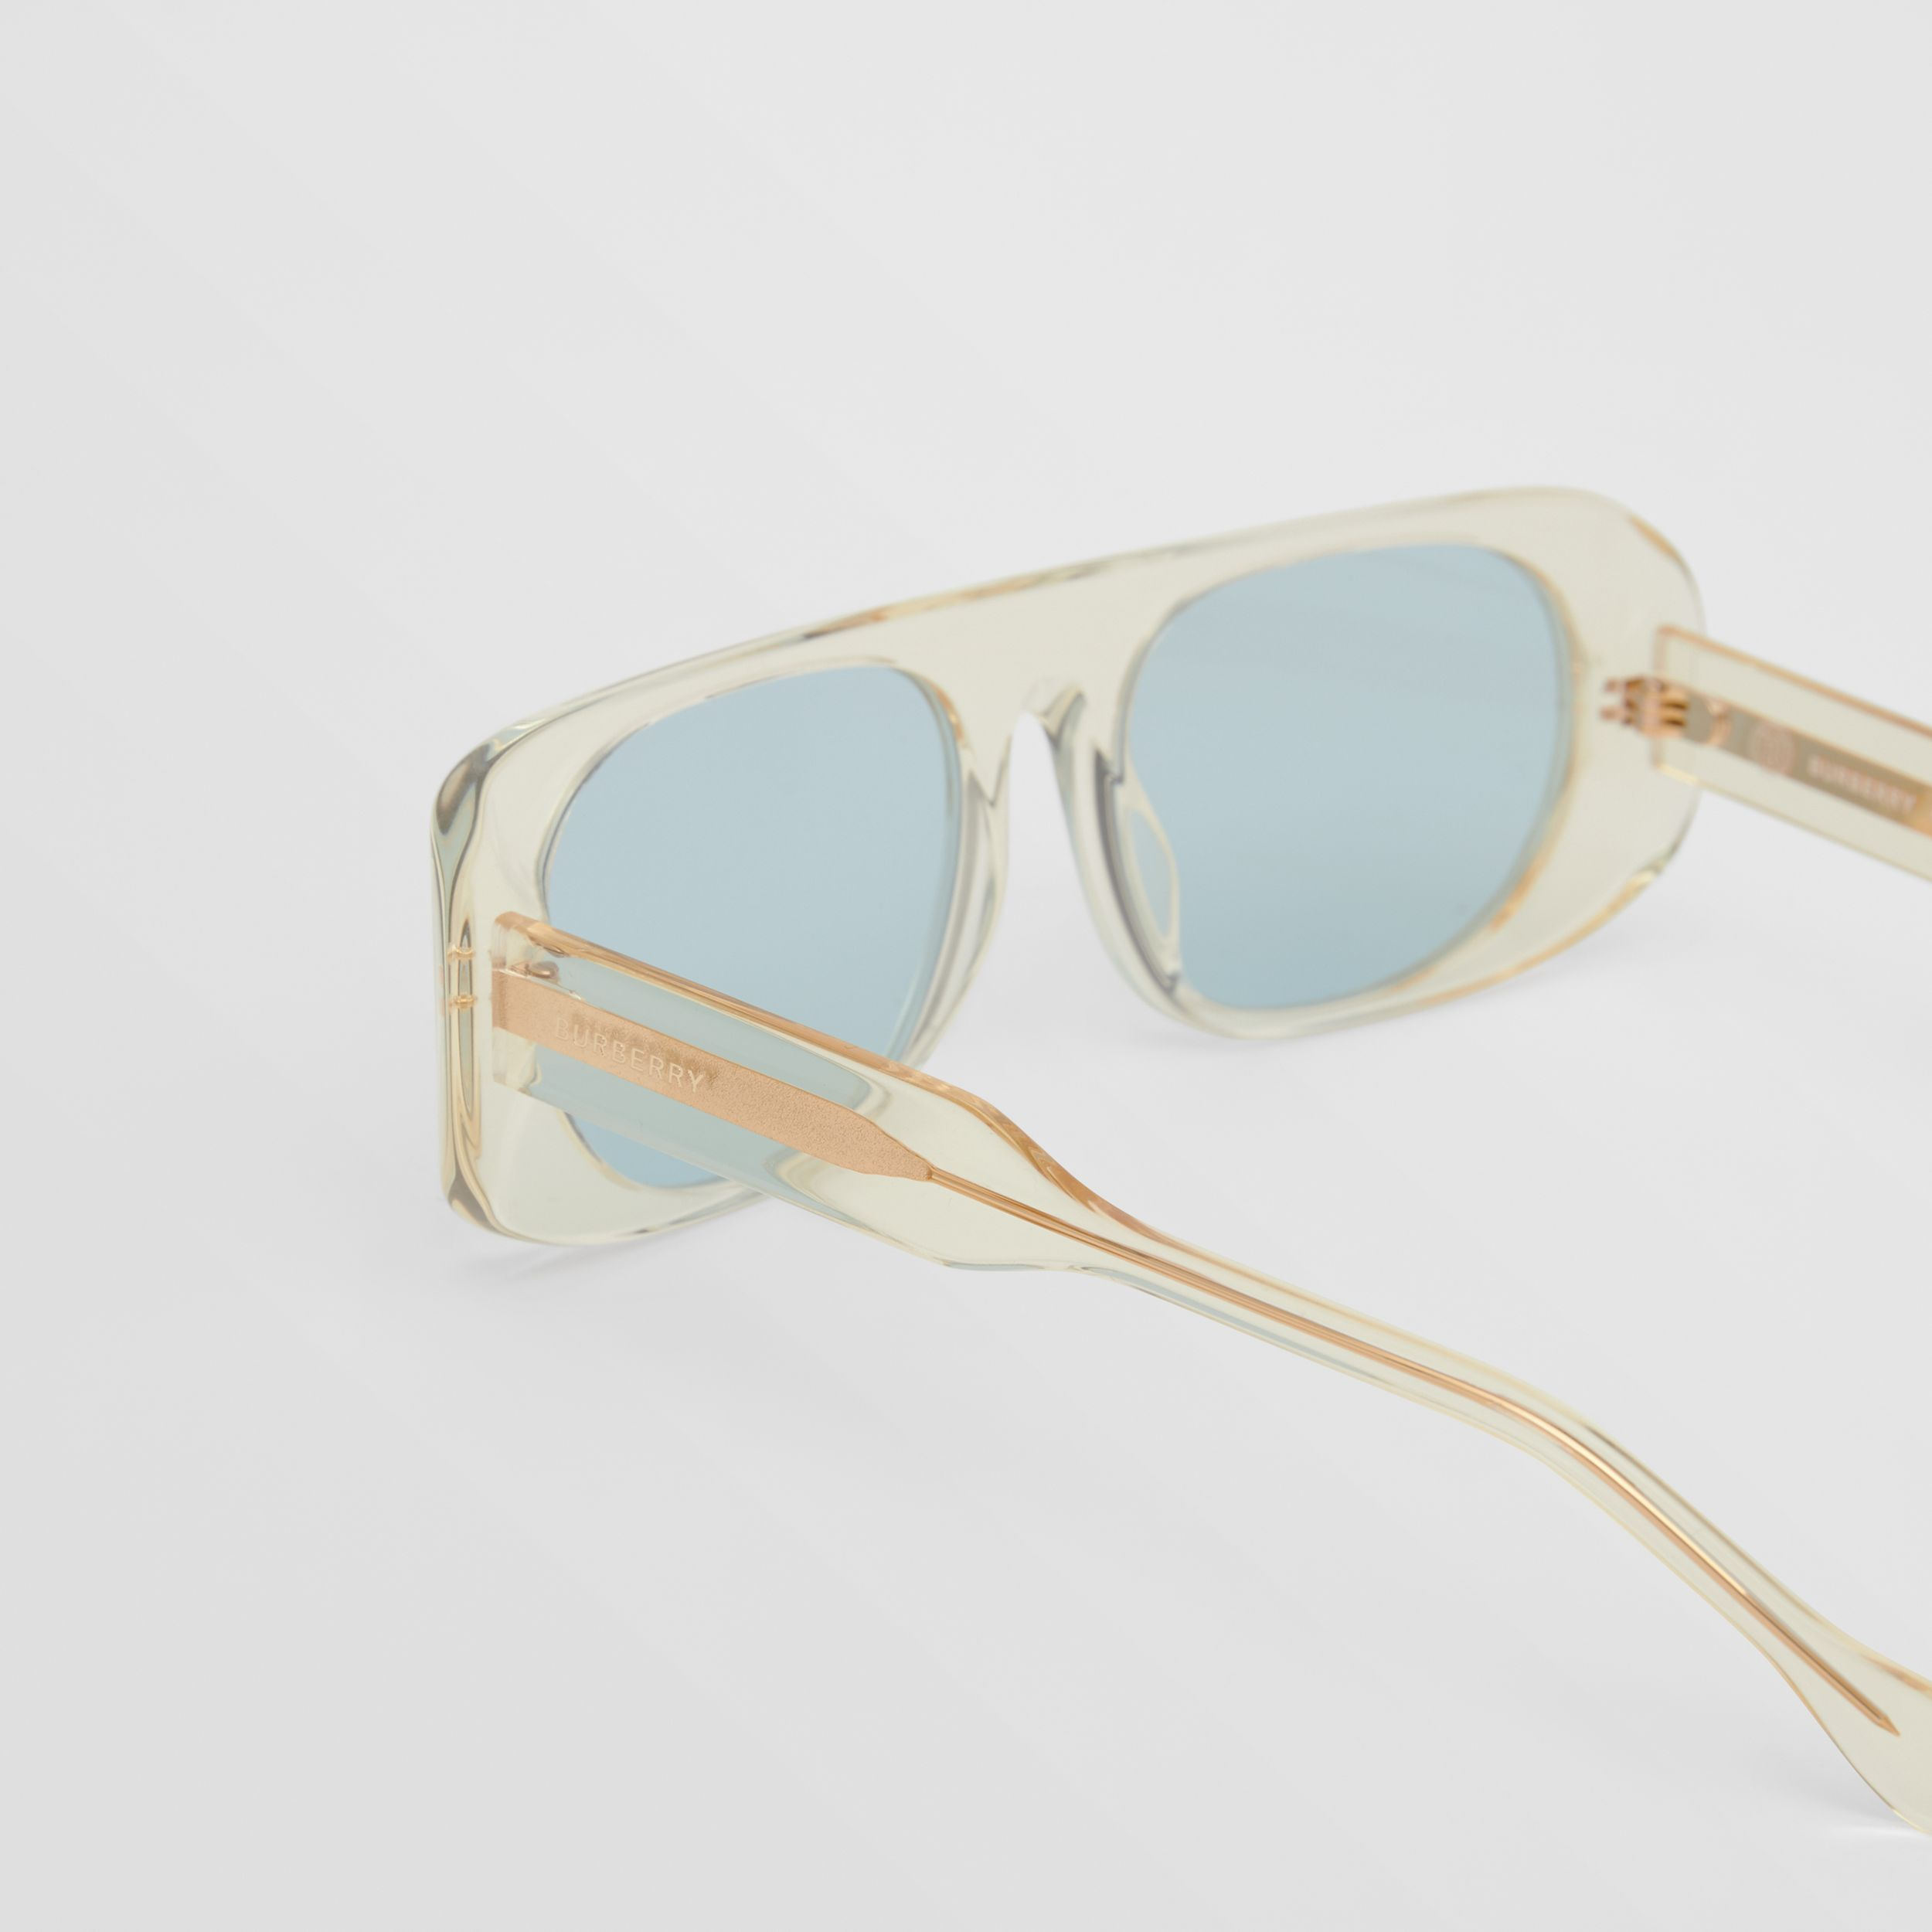 Blake Sunglasses in Transparent Champagne | Burberry United States - 2